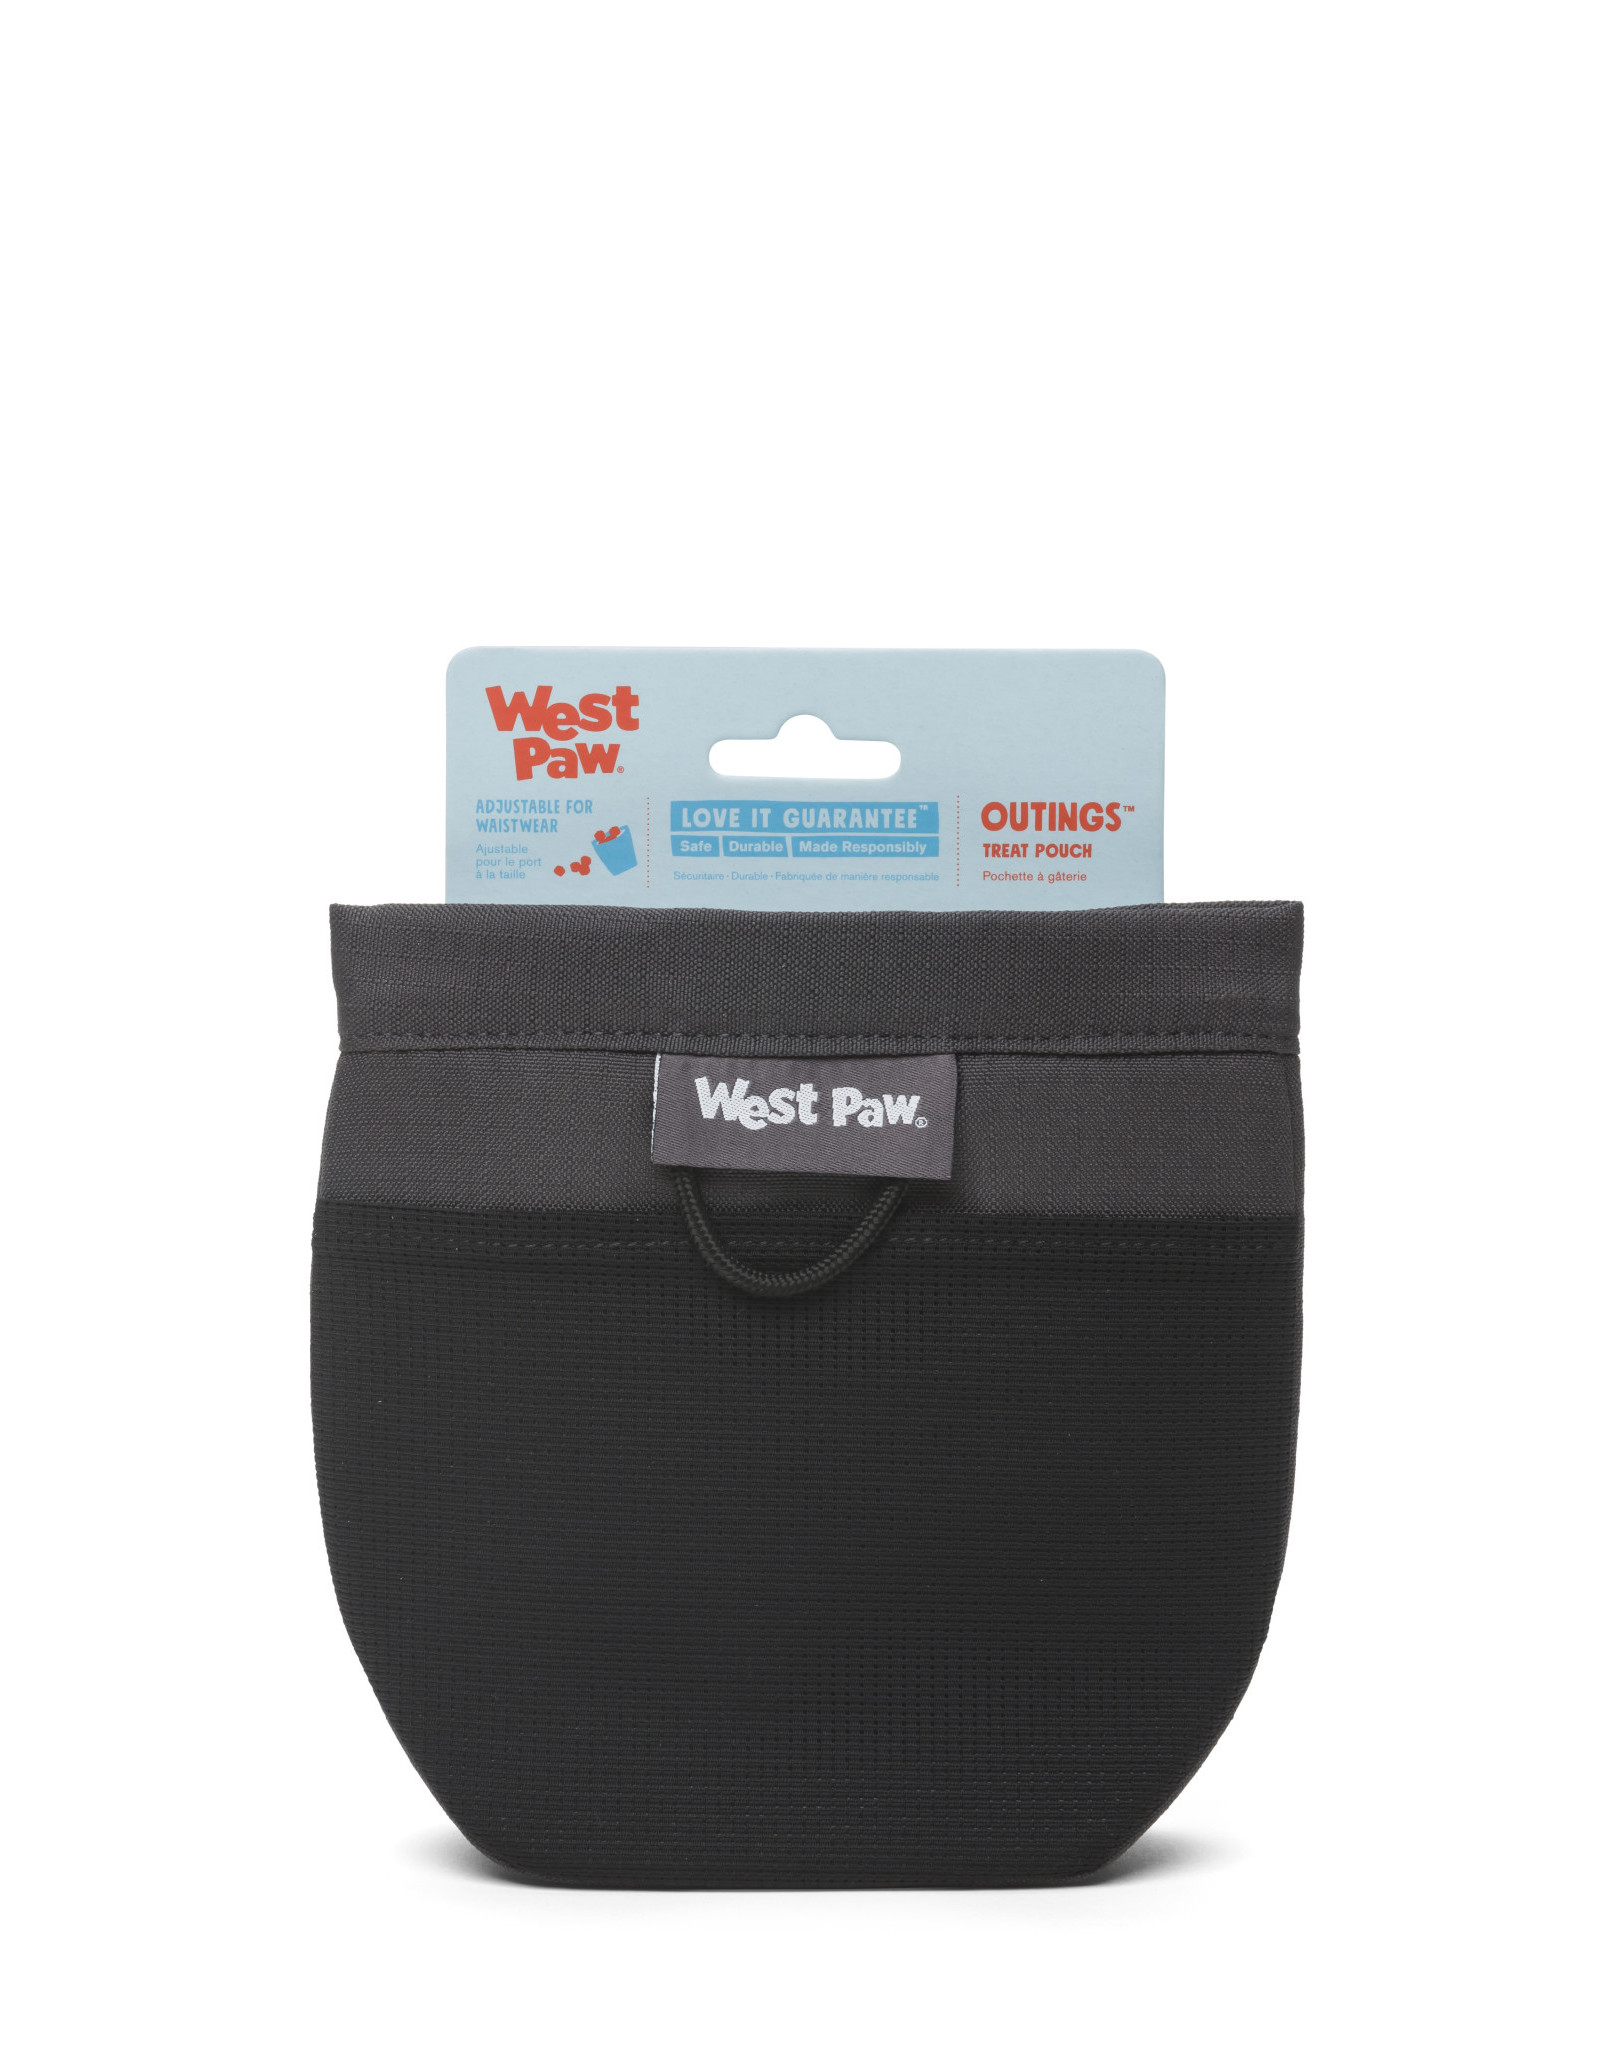 West Paw West Paw Outings: Treat Pouch, Grey